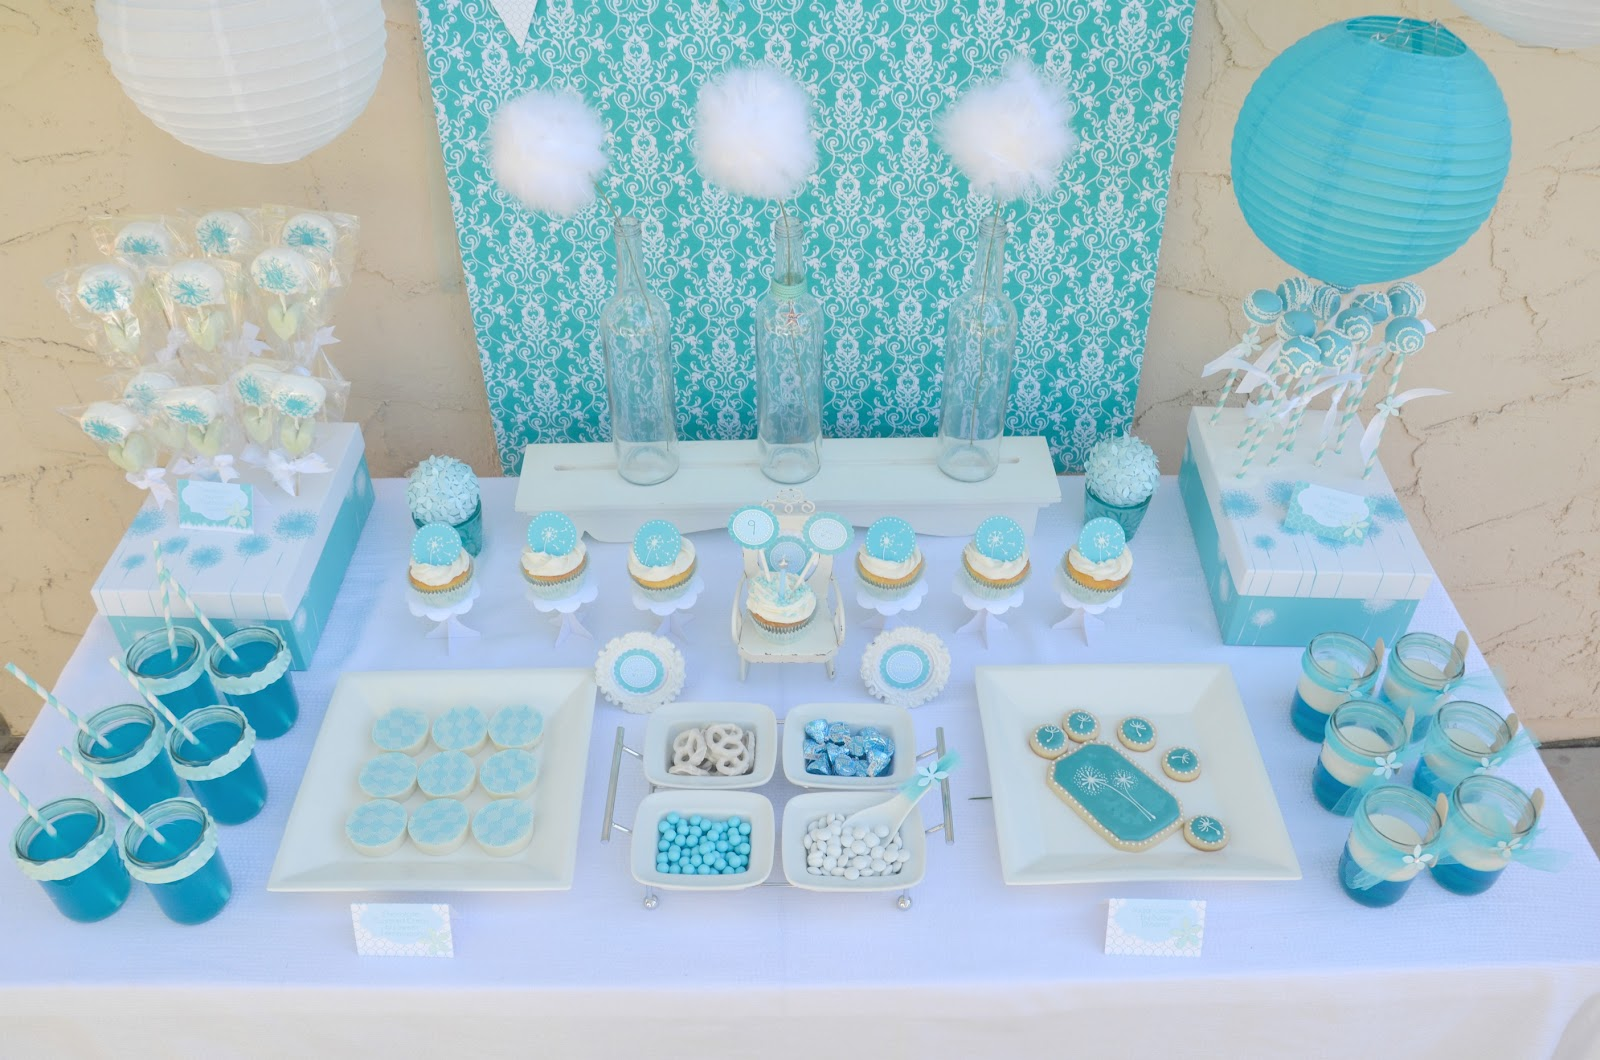 Crissys Crafts Make a Wish Birthday Party